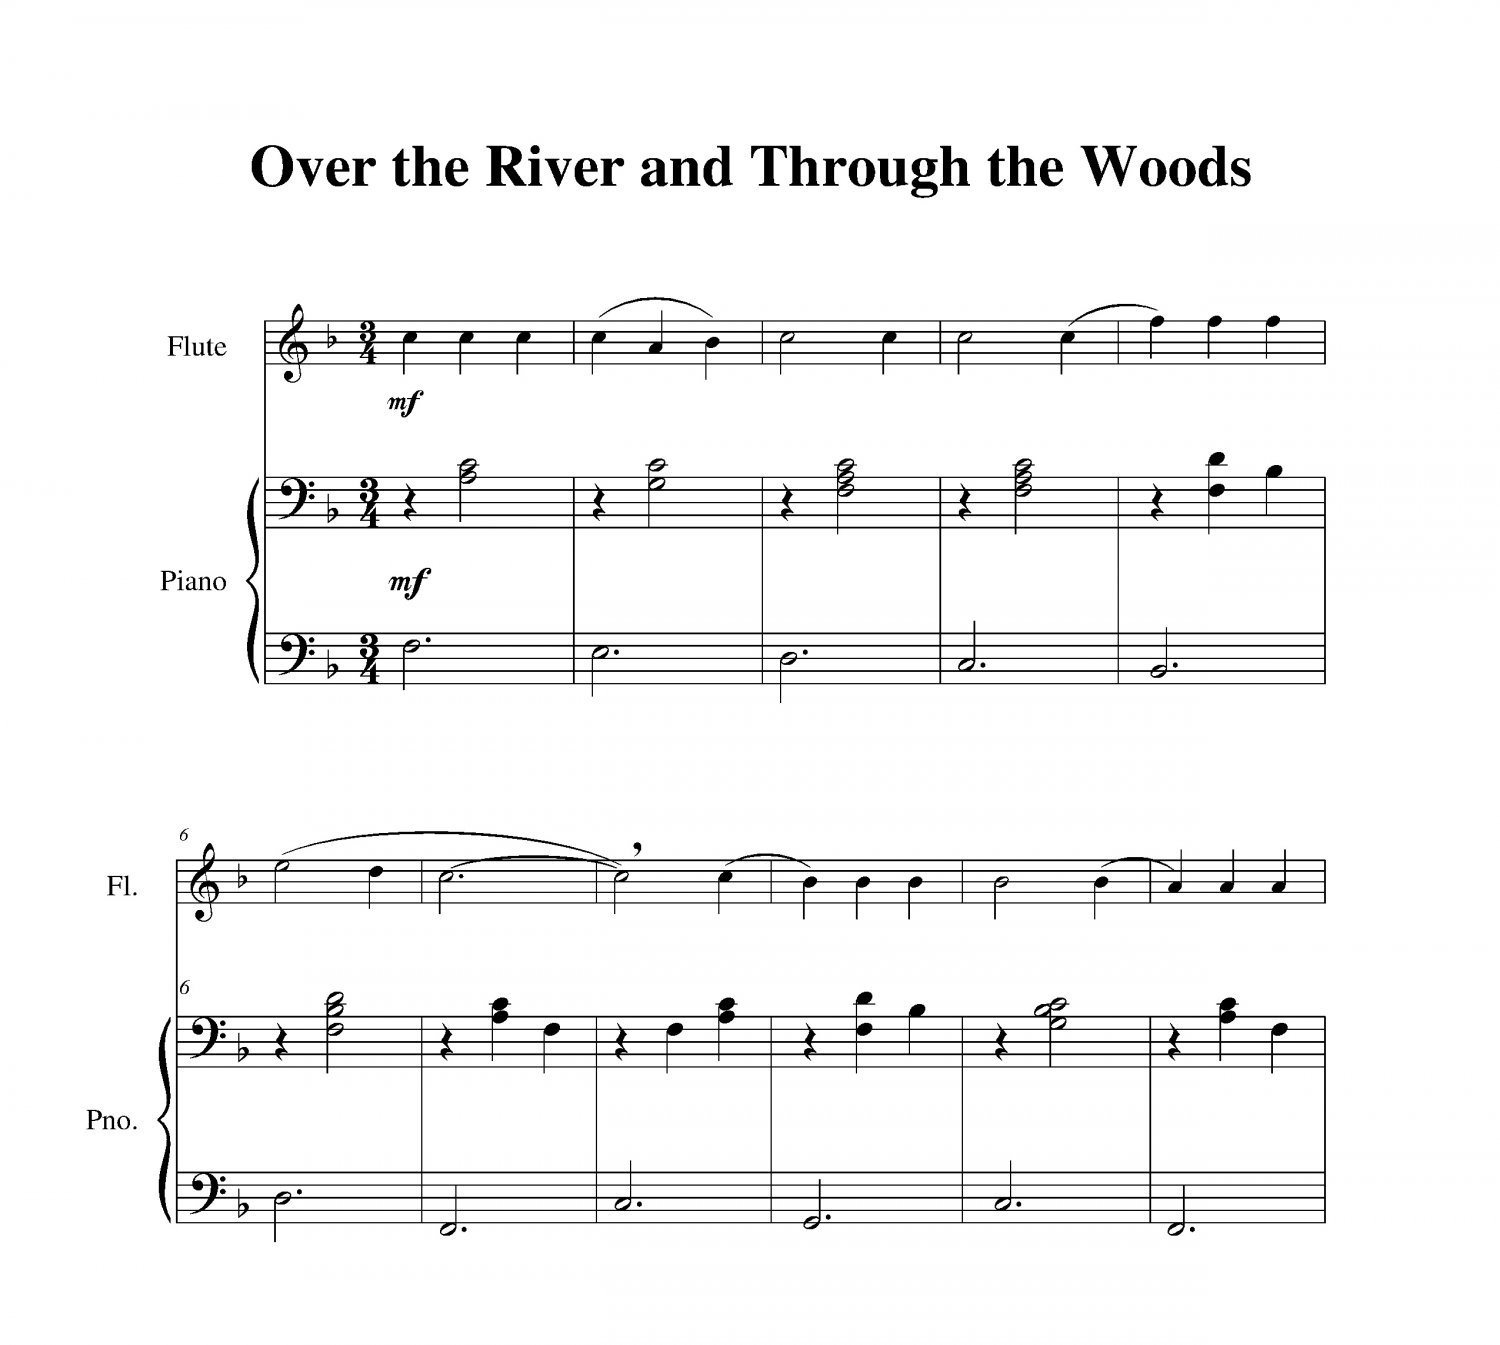 Over the River and Through the Woods